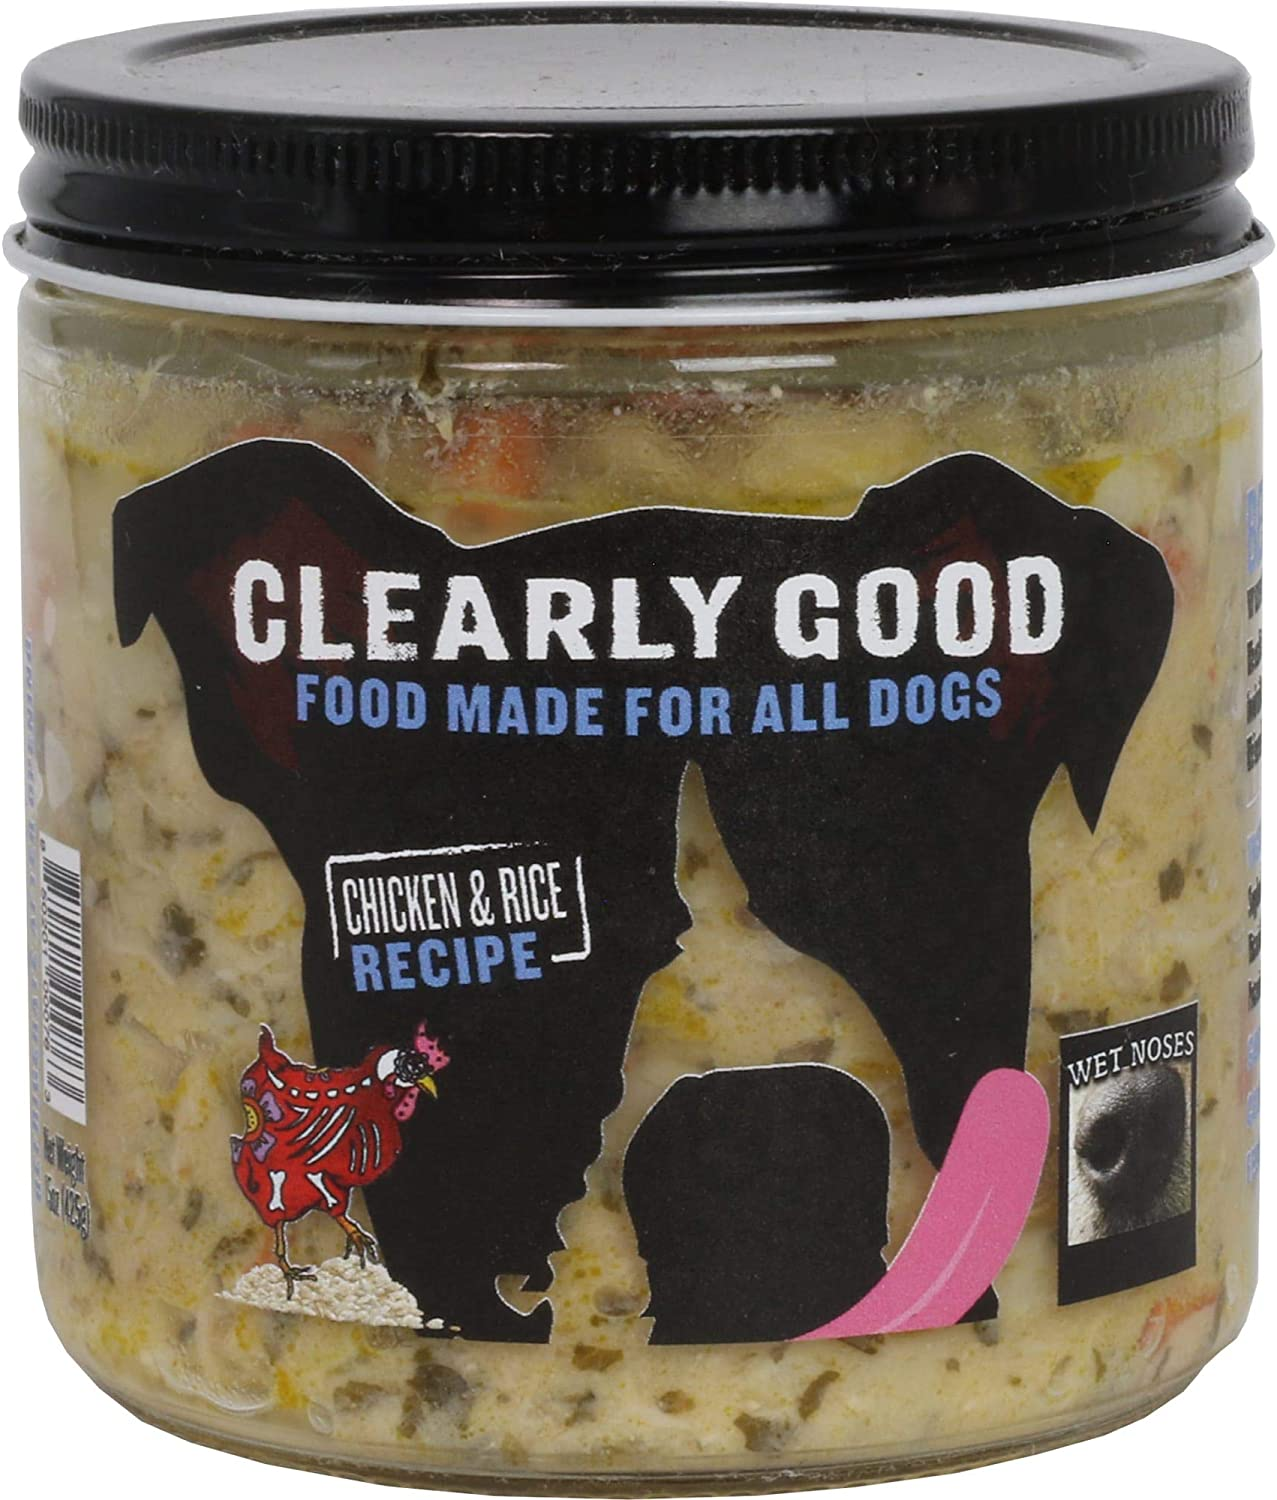 Wet Noses Clearly Good Wet Dog Food – for All Pet Sizes, Breeds – All-Natural Wet Dog Food – Delicious Organic Food for Dogs – Allergen-Free Puppy Food – 15 Oz. Jar - Chicken & Rice